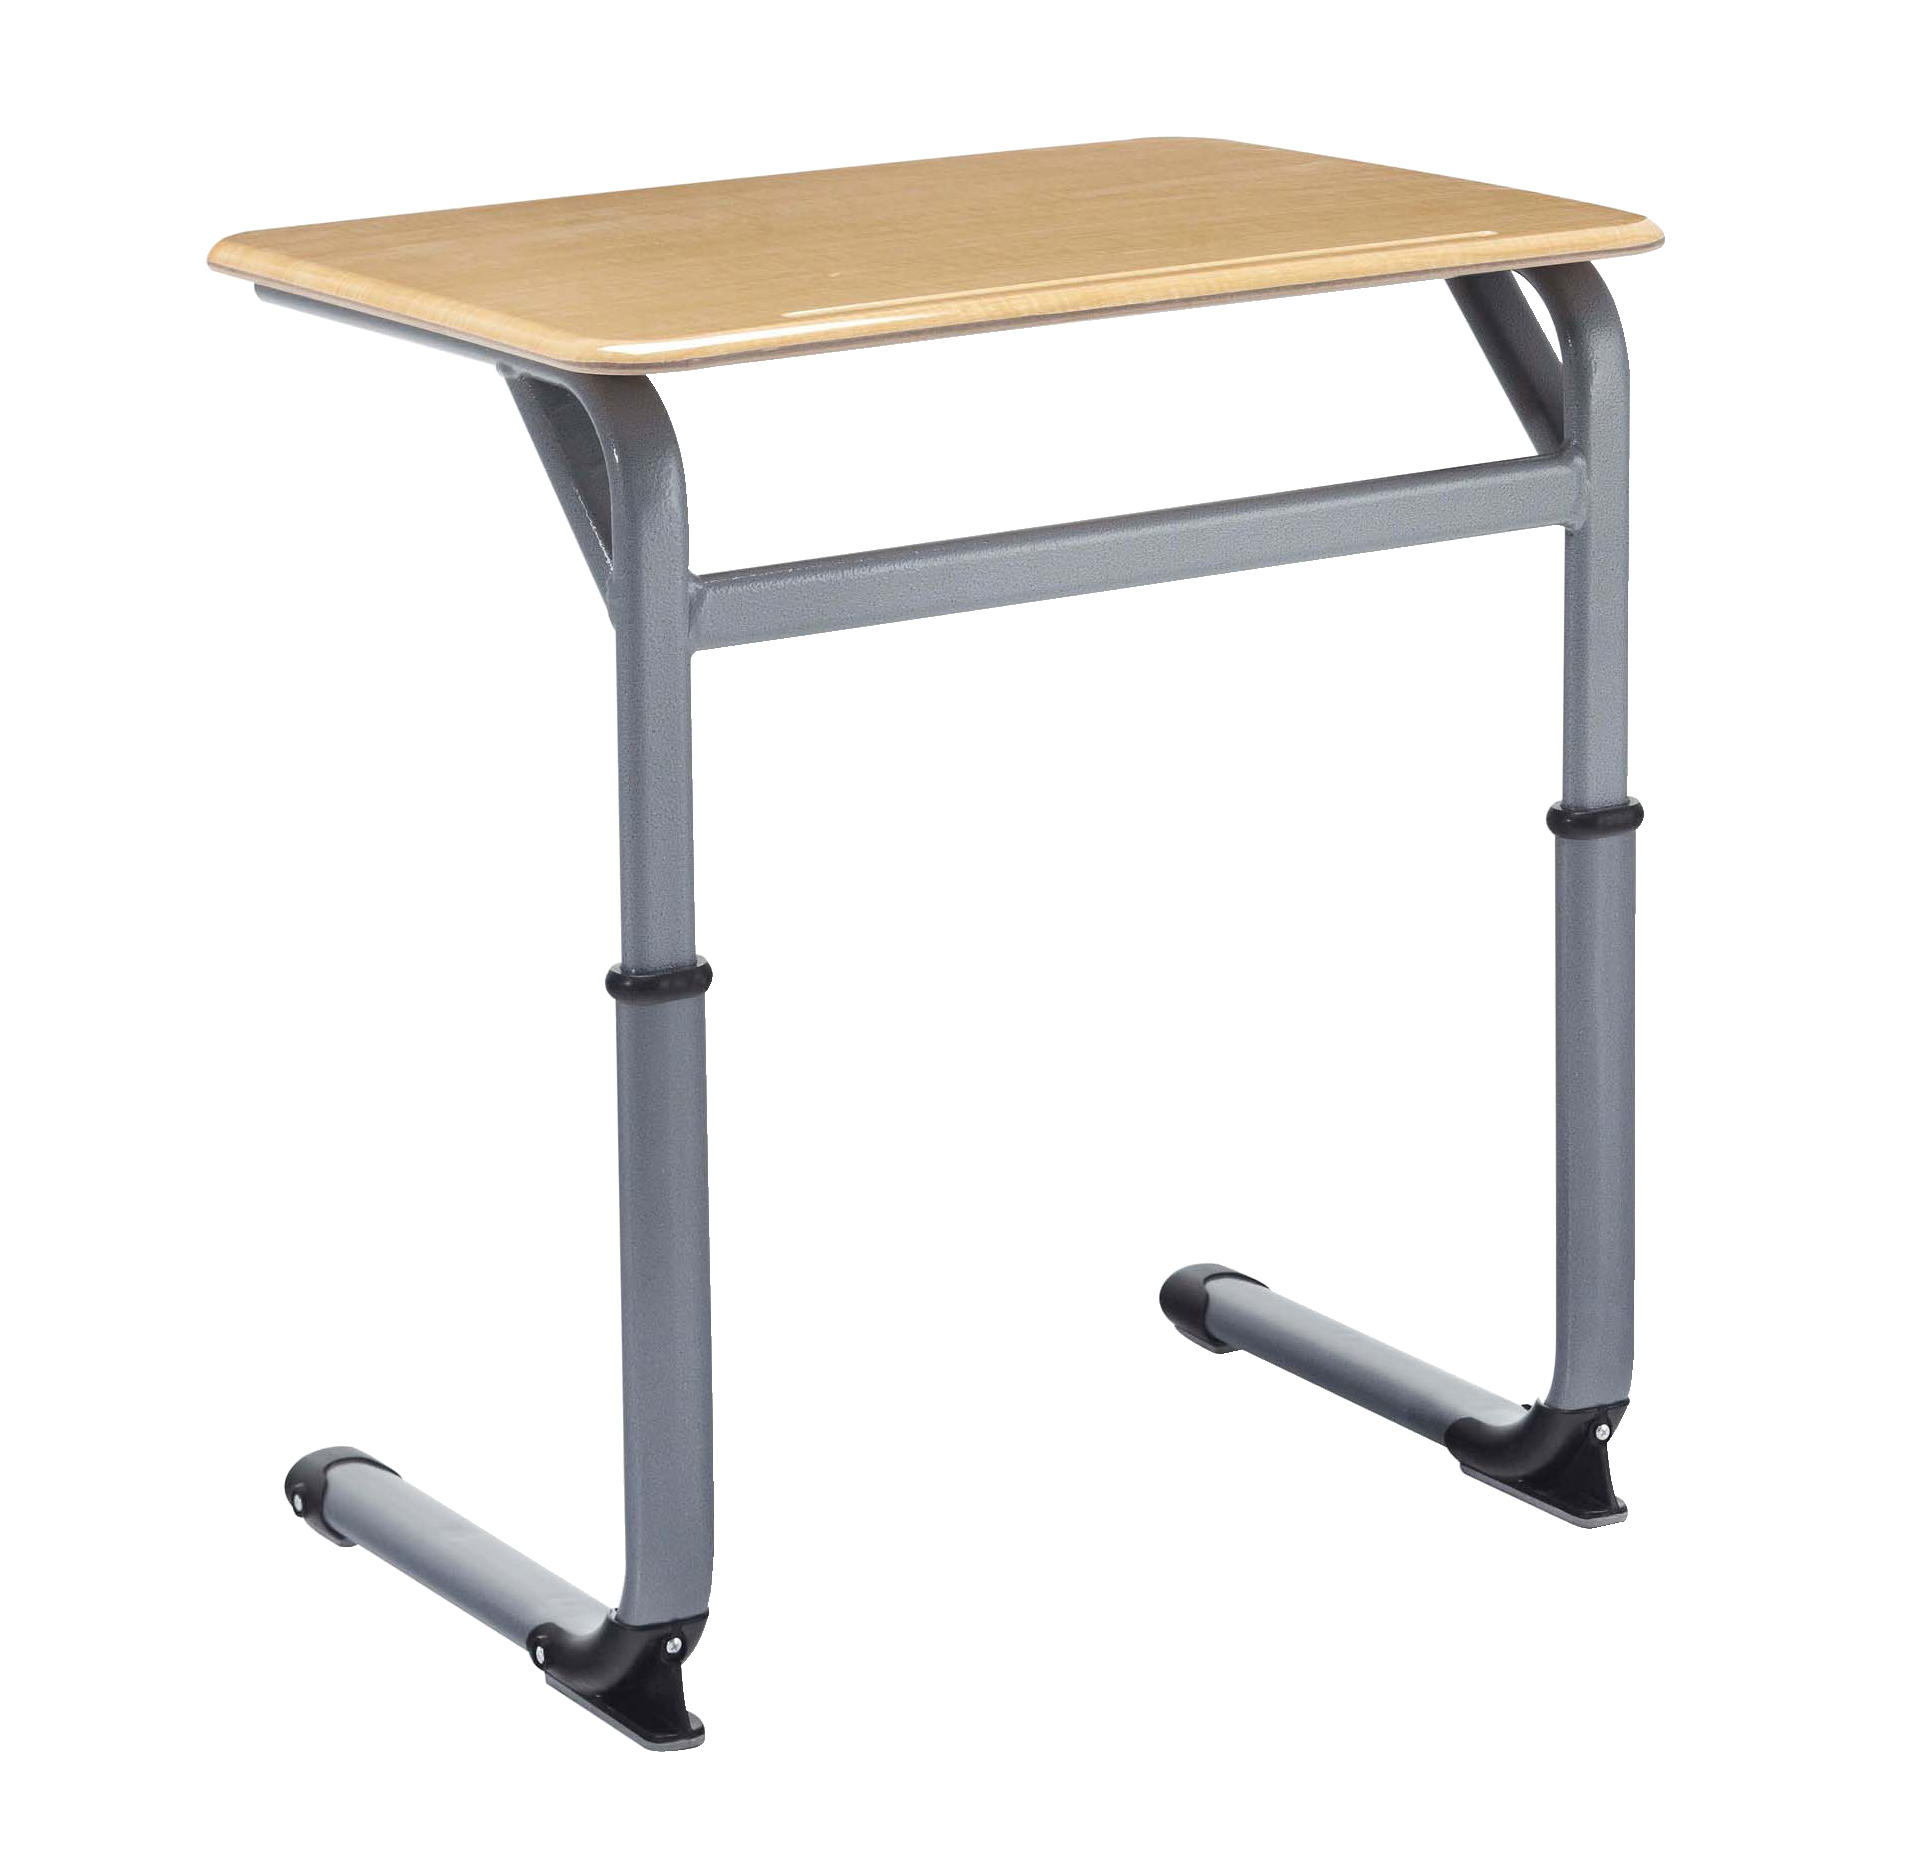 Elliptical Cantilever Desk